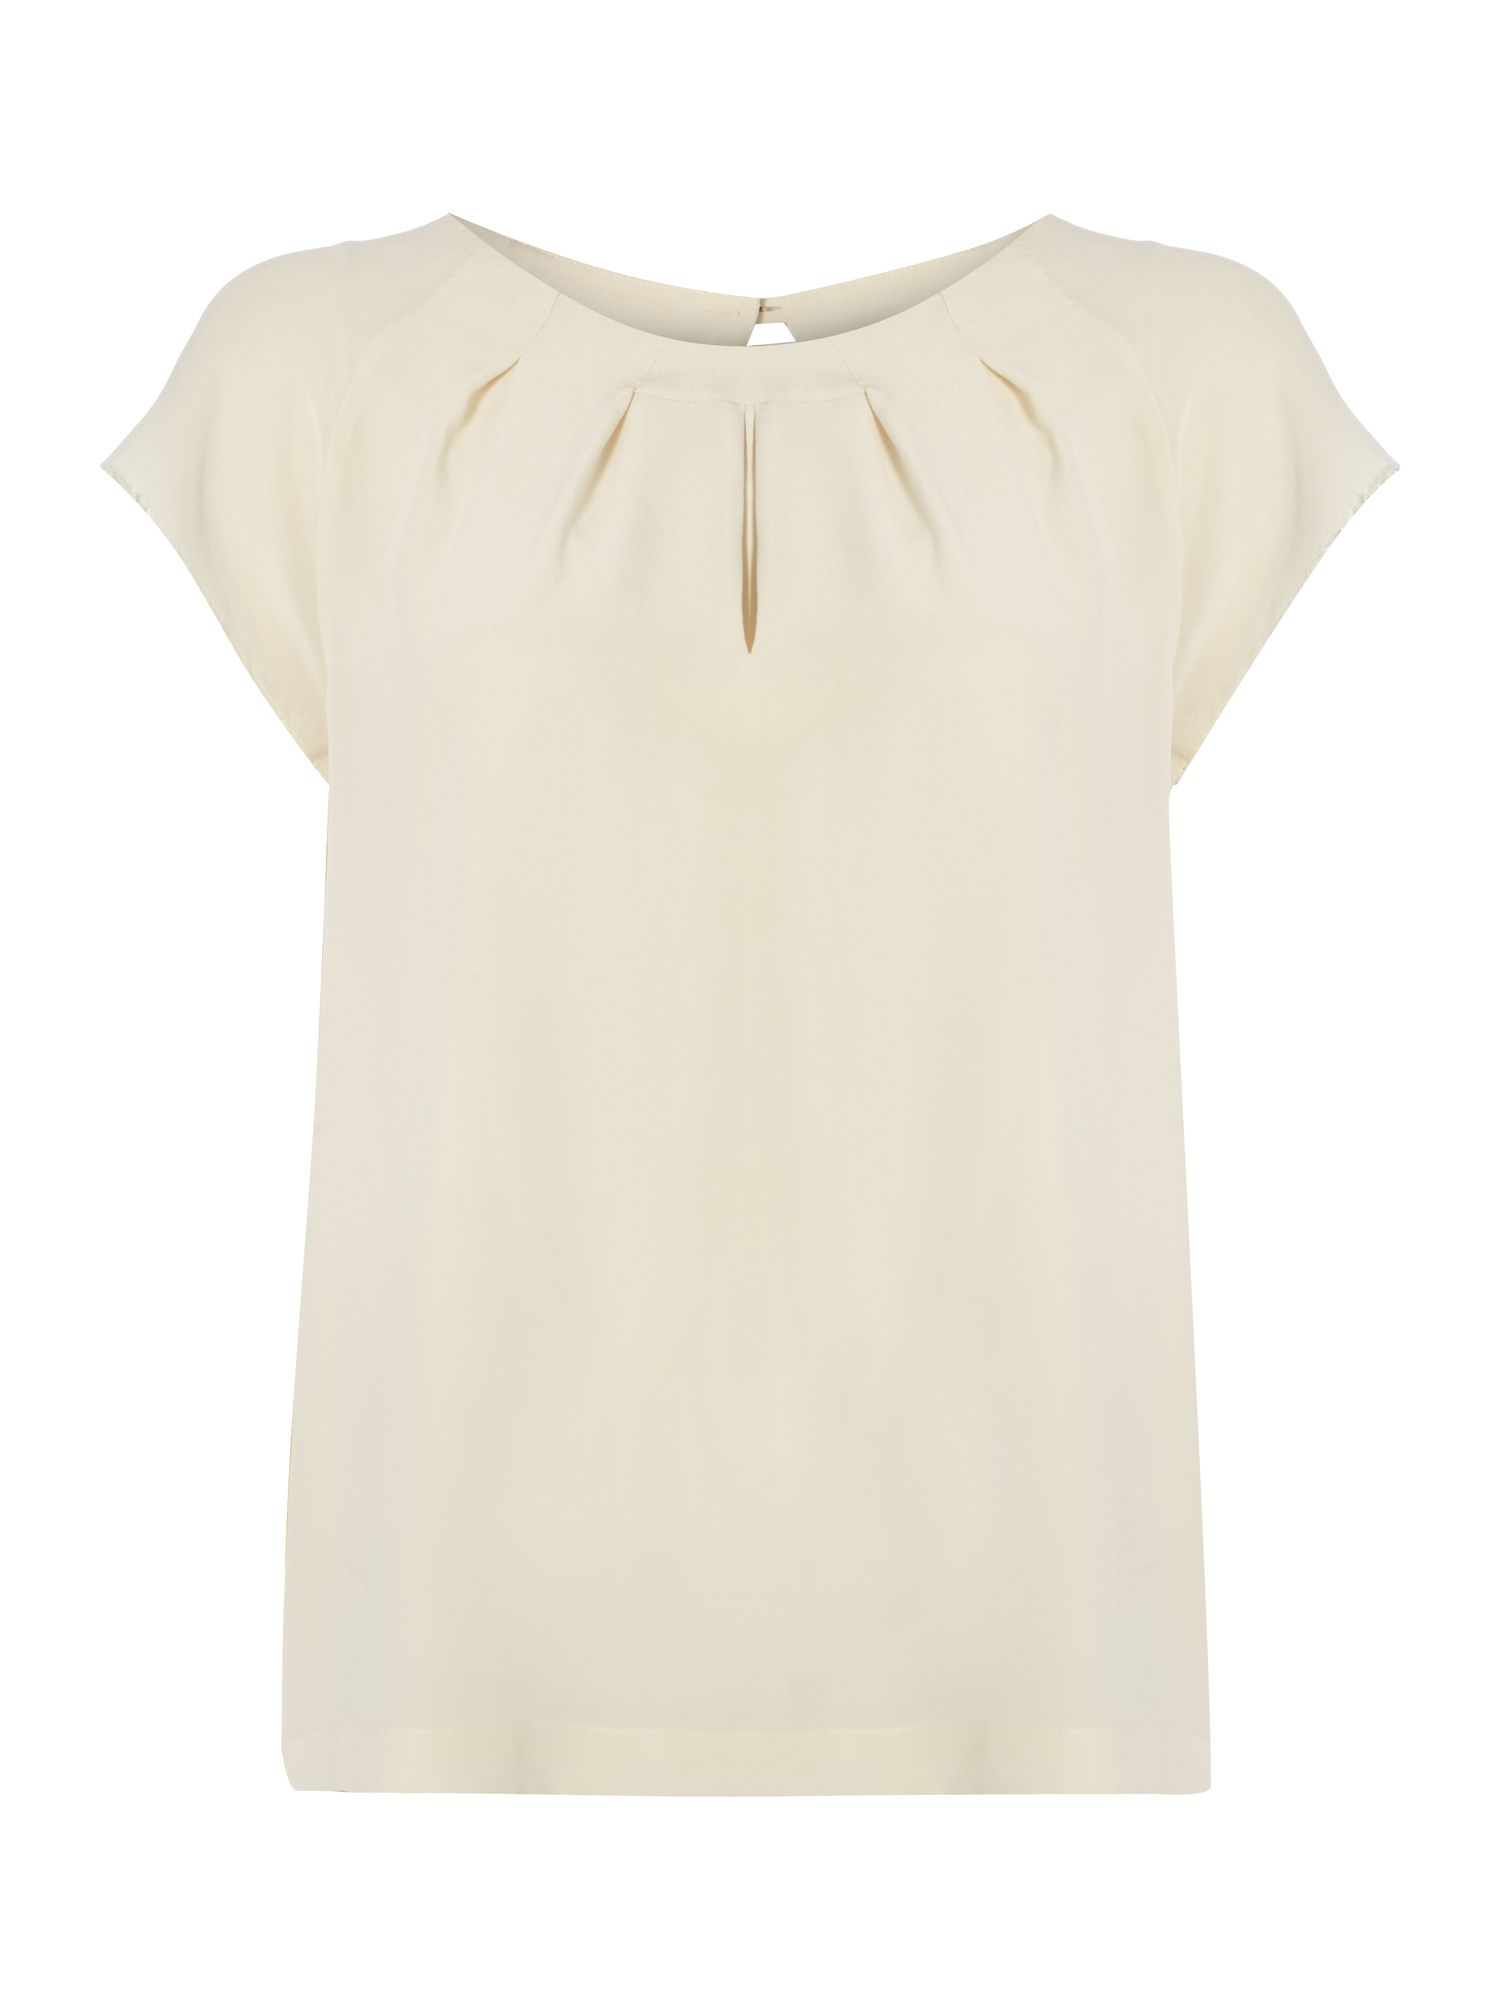 Niagara silk short sleeved top